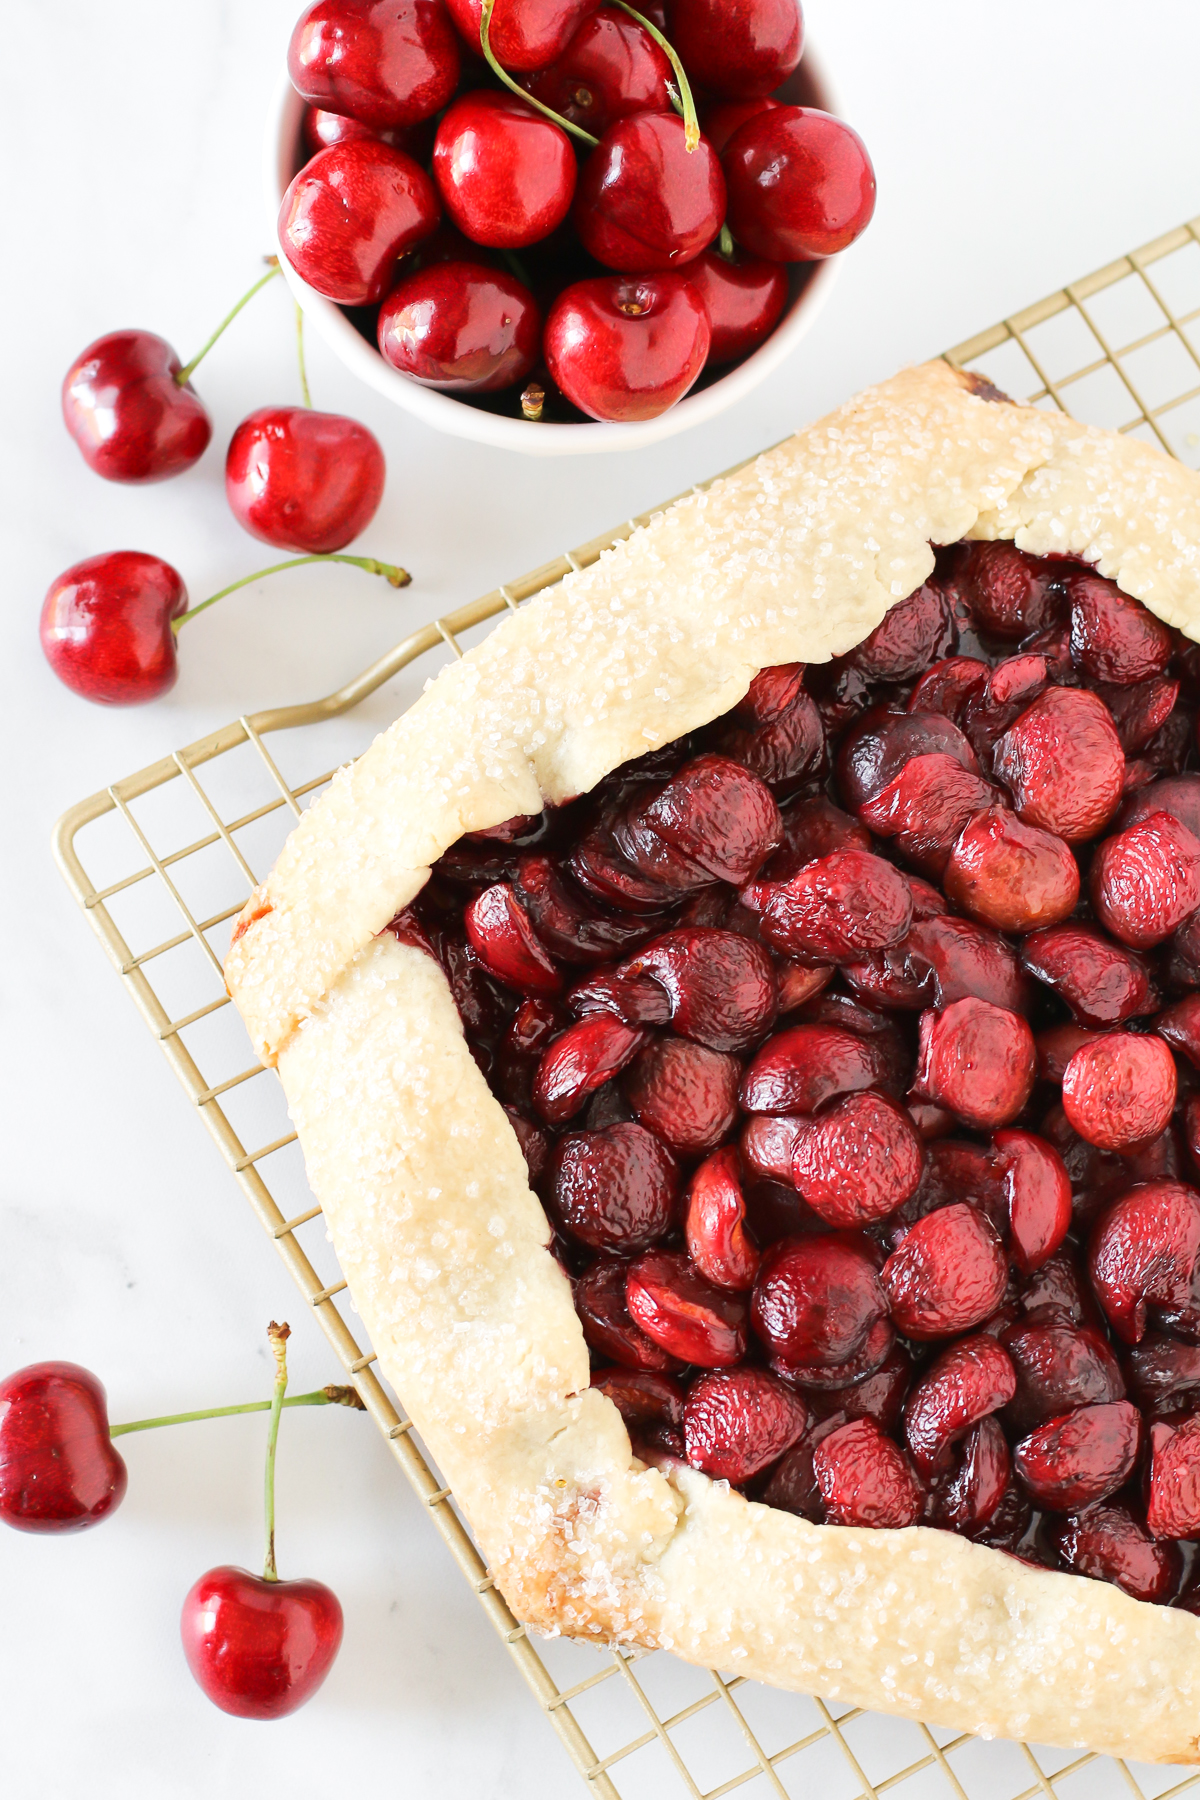 Gluten Free Vegan Cherry Crostata. Flakey gluten free crust, filled with an abundance of sweet, fresh cherries. Who's ready for pie?